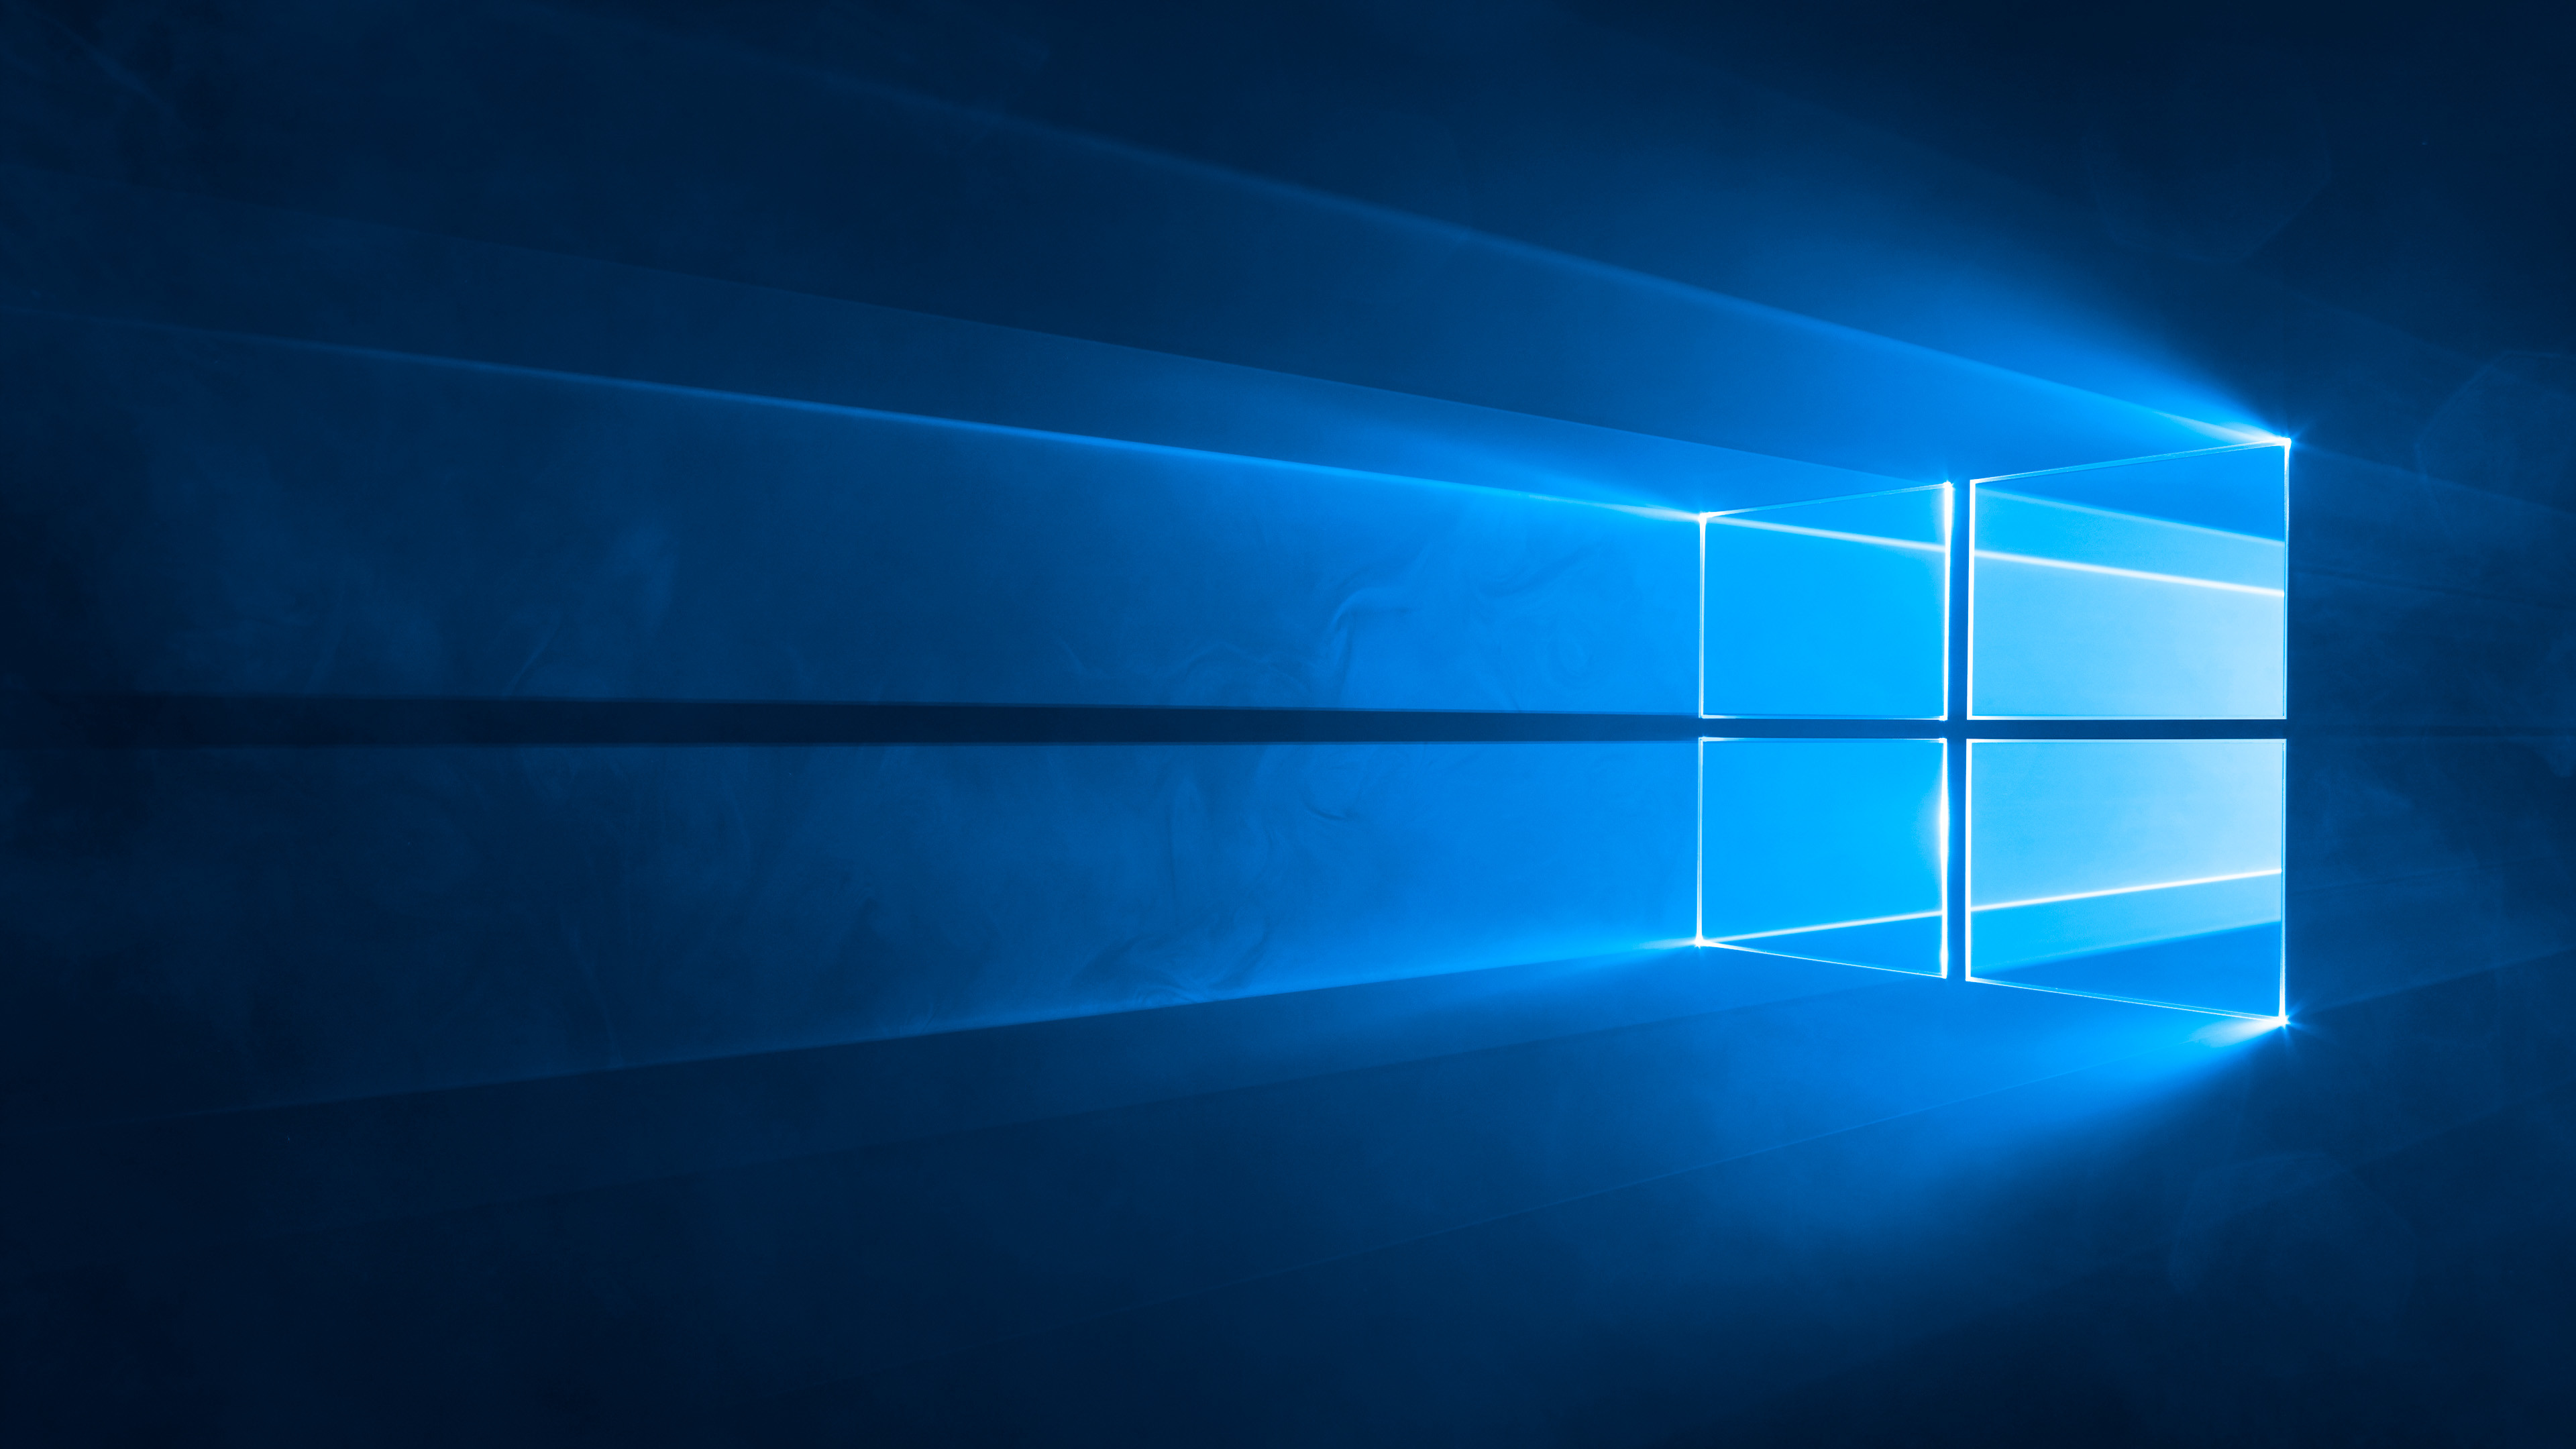 Download the stock Windows 10 wallpapers for your tablet or .